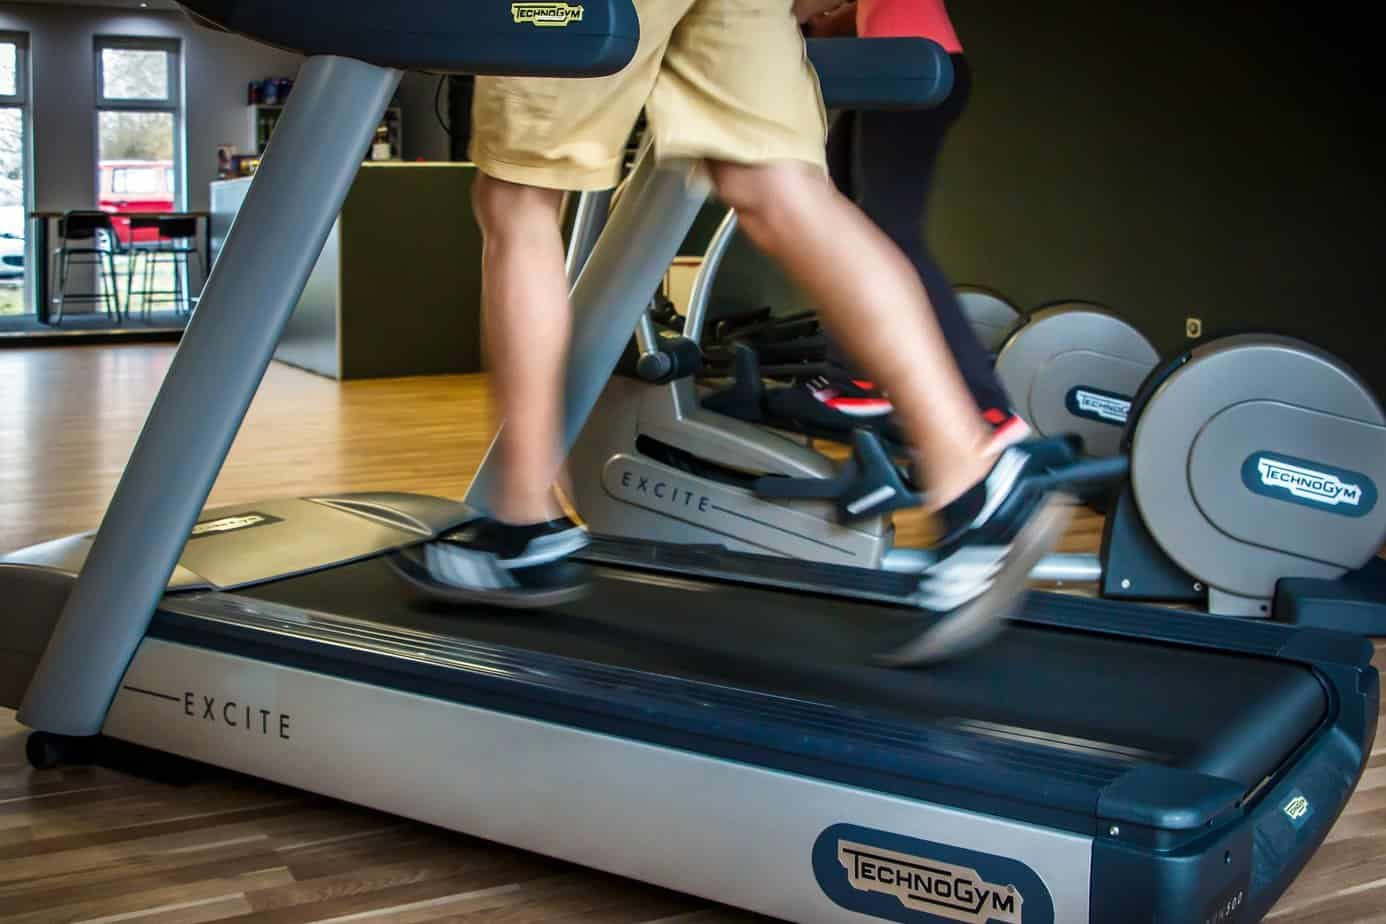 An Intense Treadmill HIIT Workout To Help Crush Your Fitness Goals